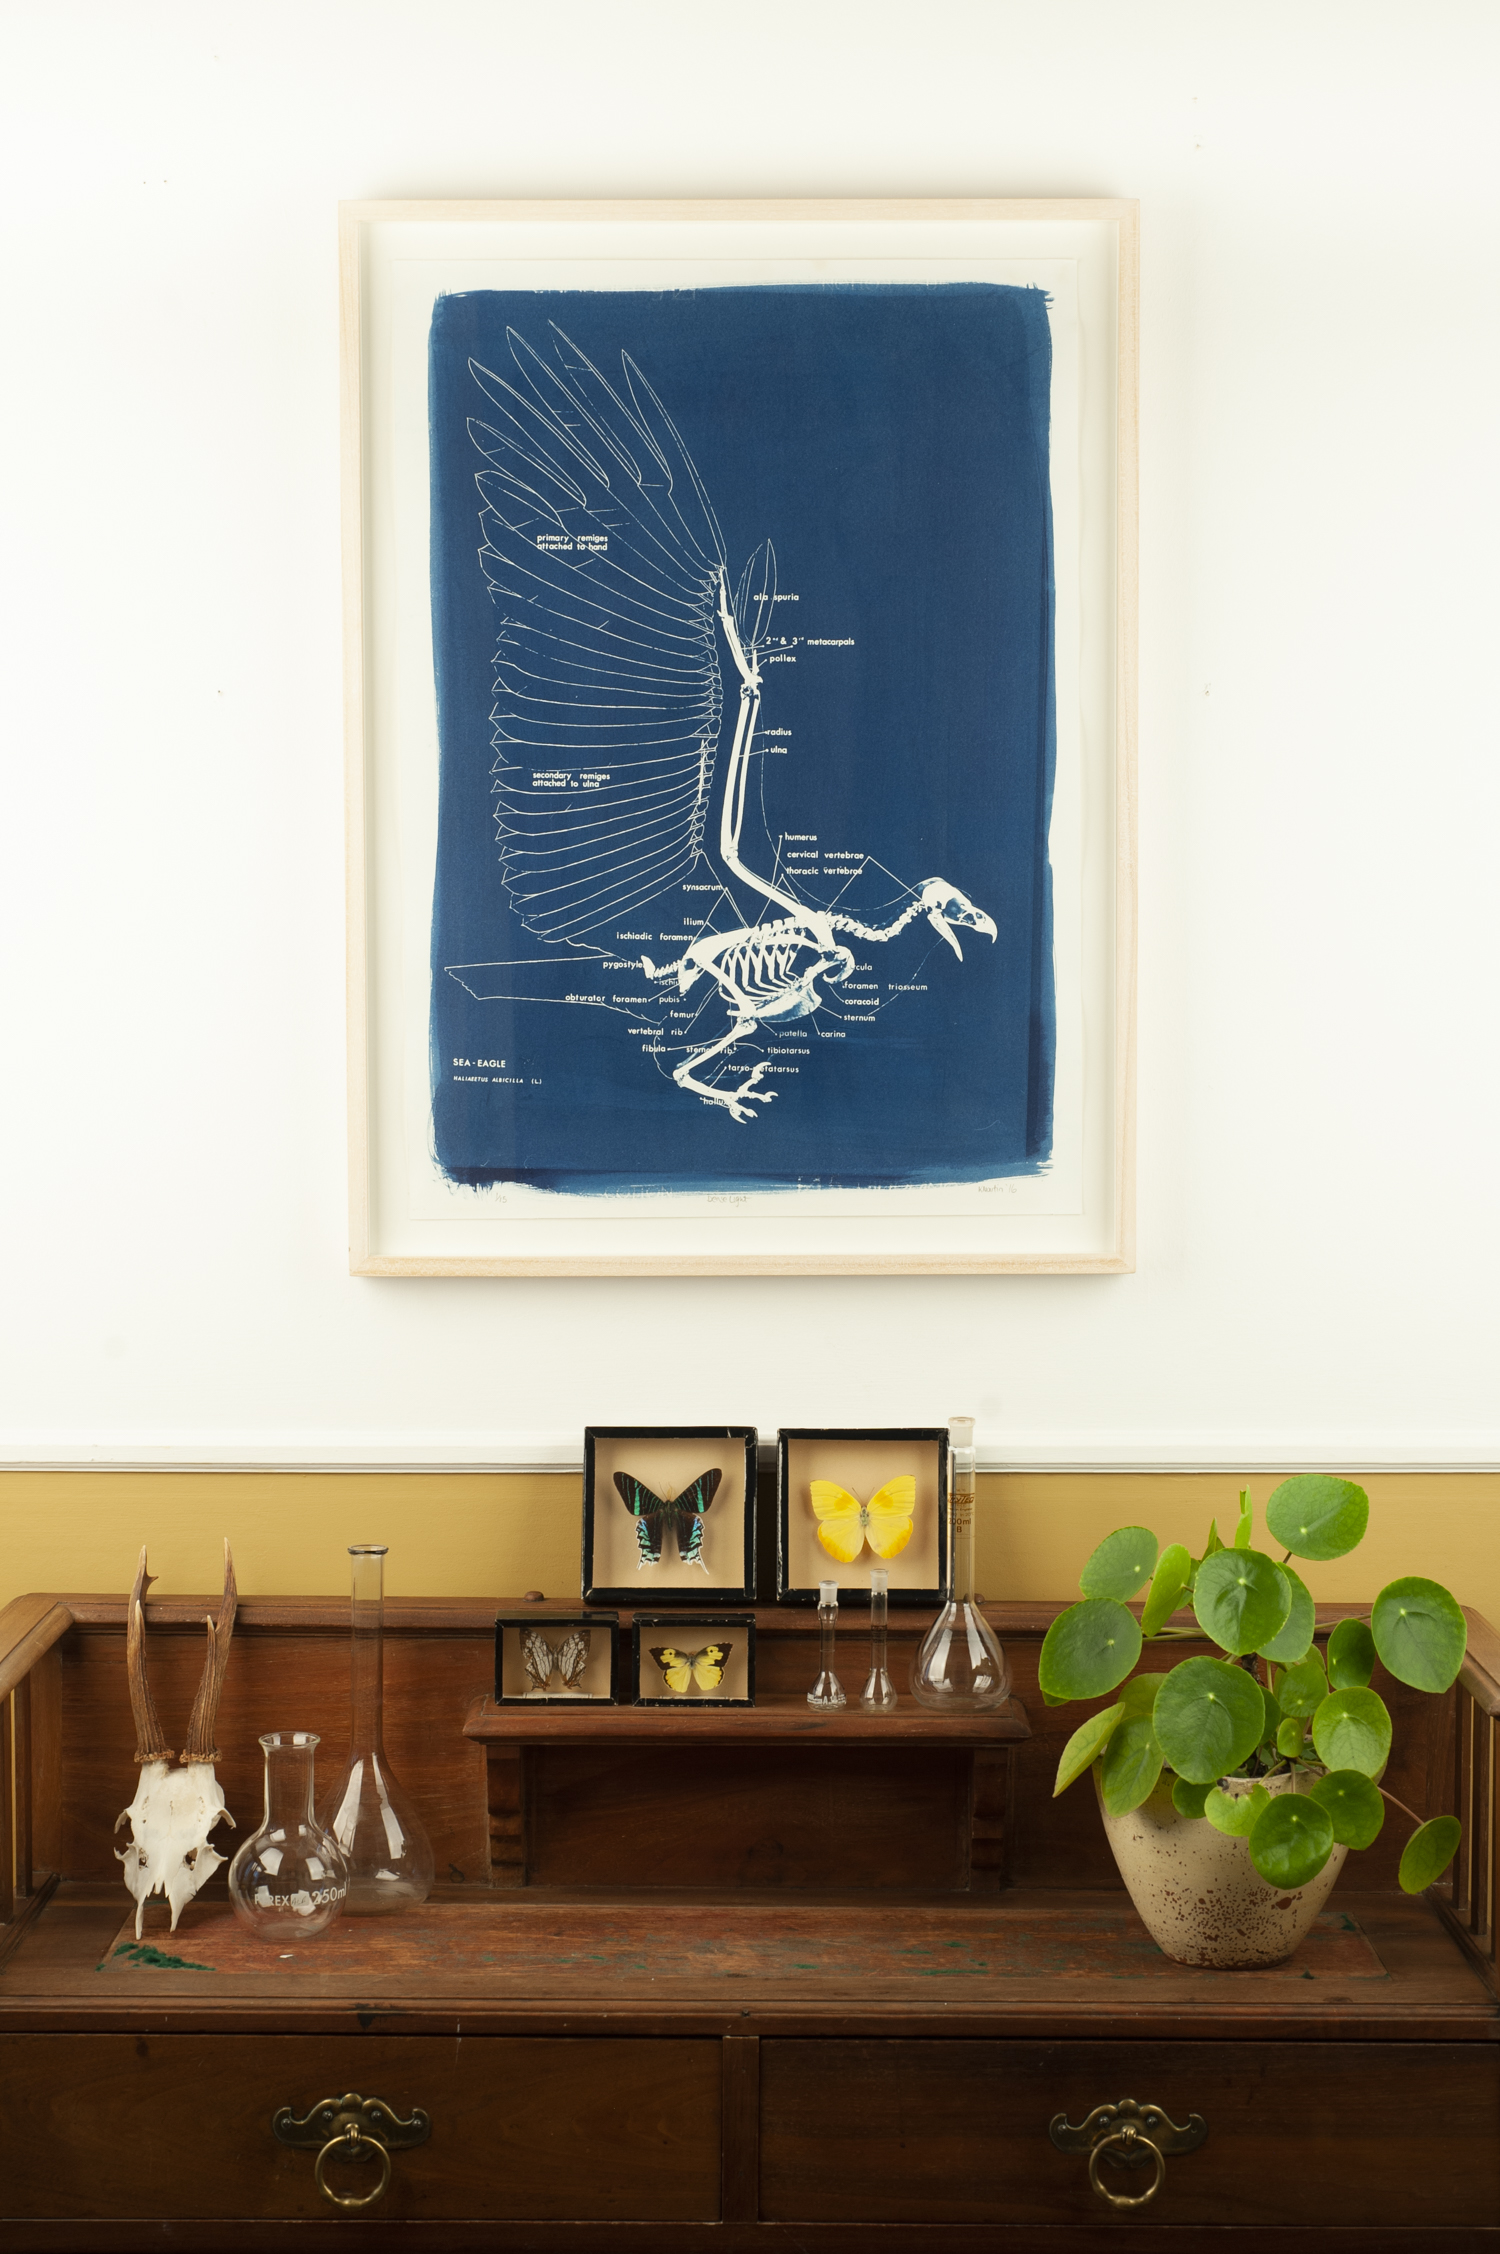 Cyanotype print of sea eagle skeleton framed and hanging on a wall above a cabinet with butterfly specimens and a potted pilea plant on it.